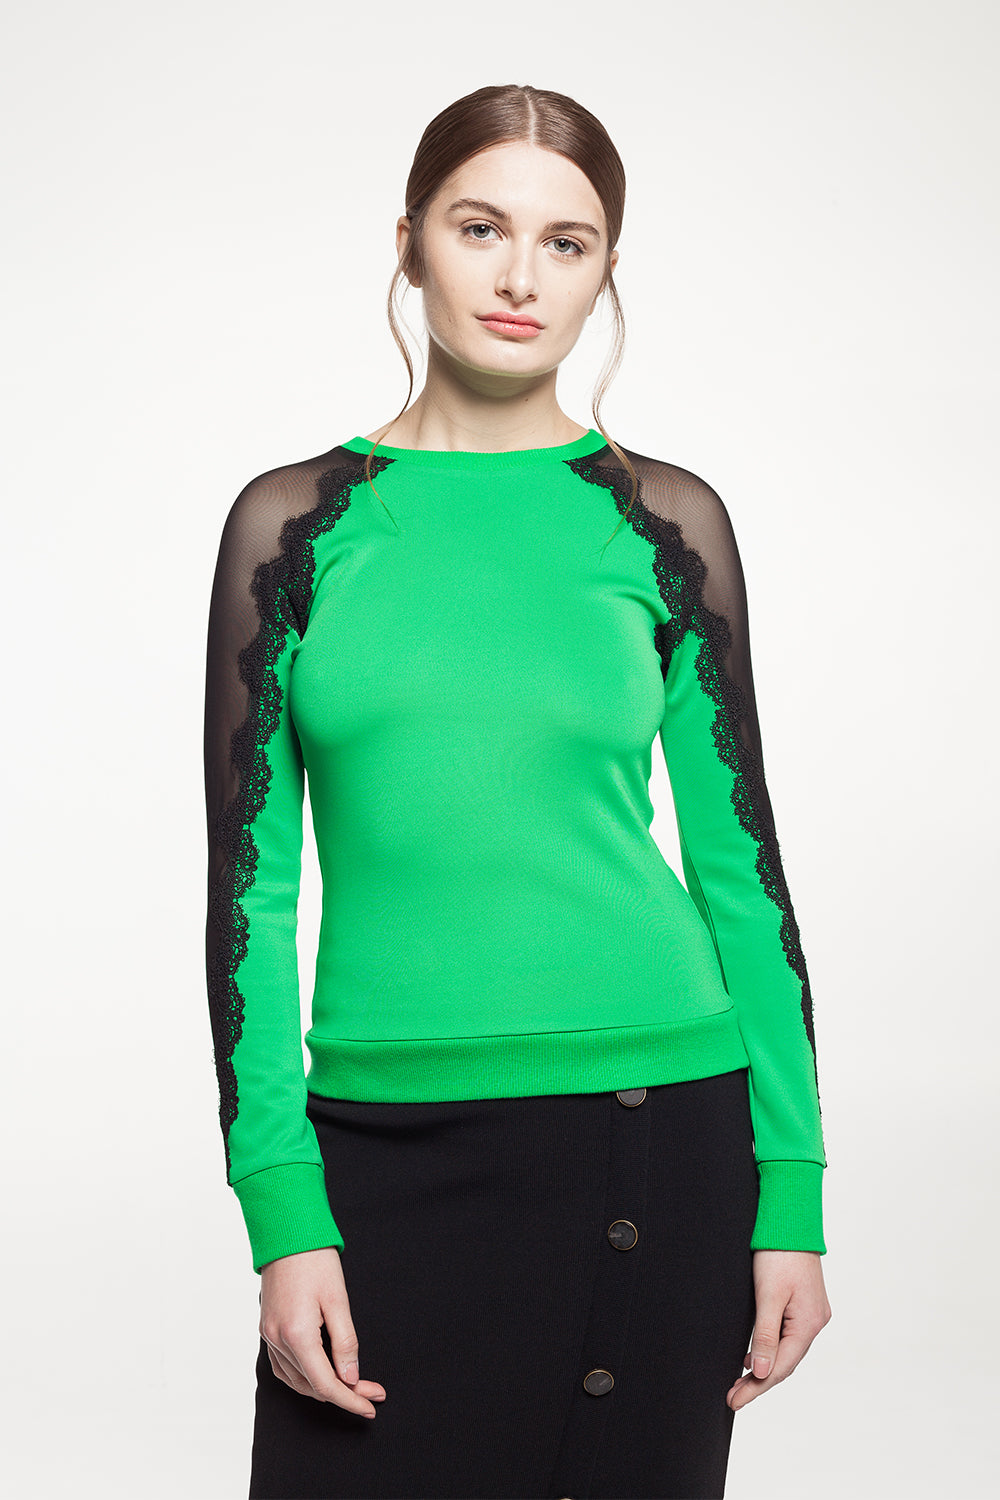 Green Lace Top - 60% Off